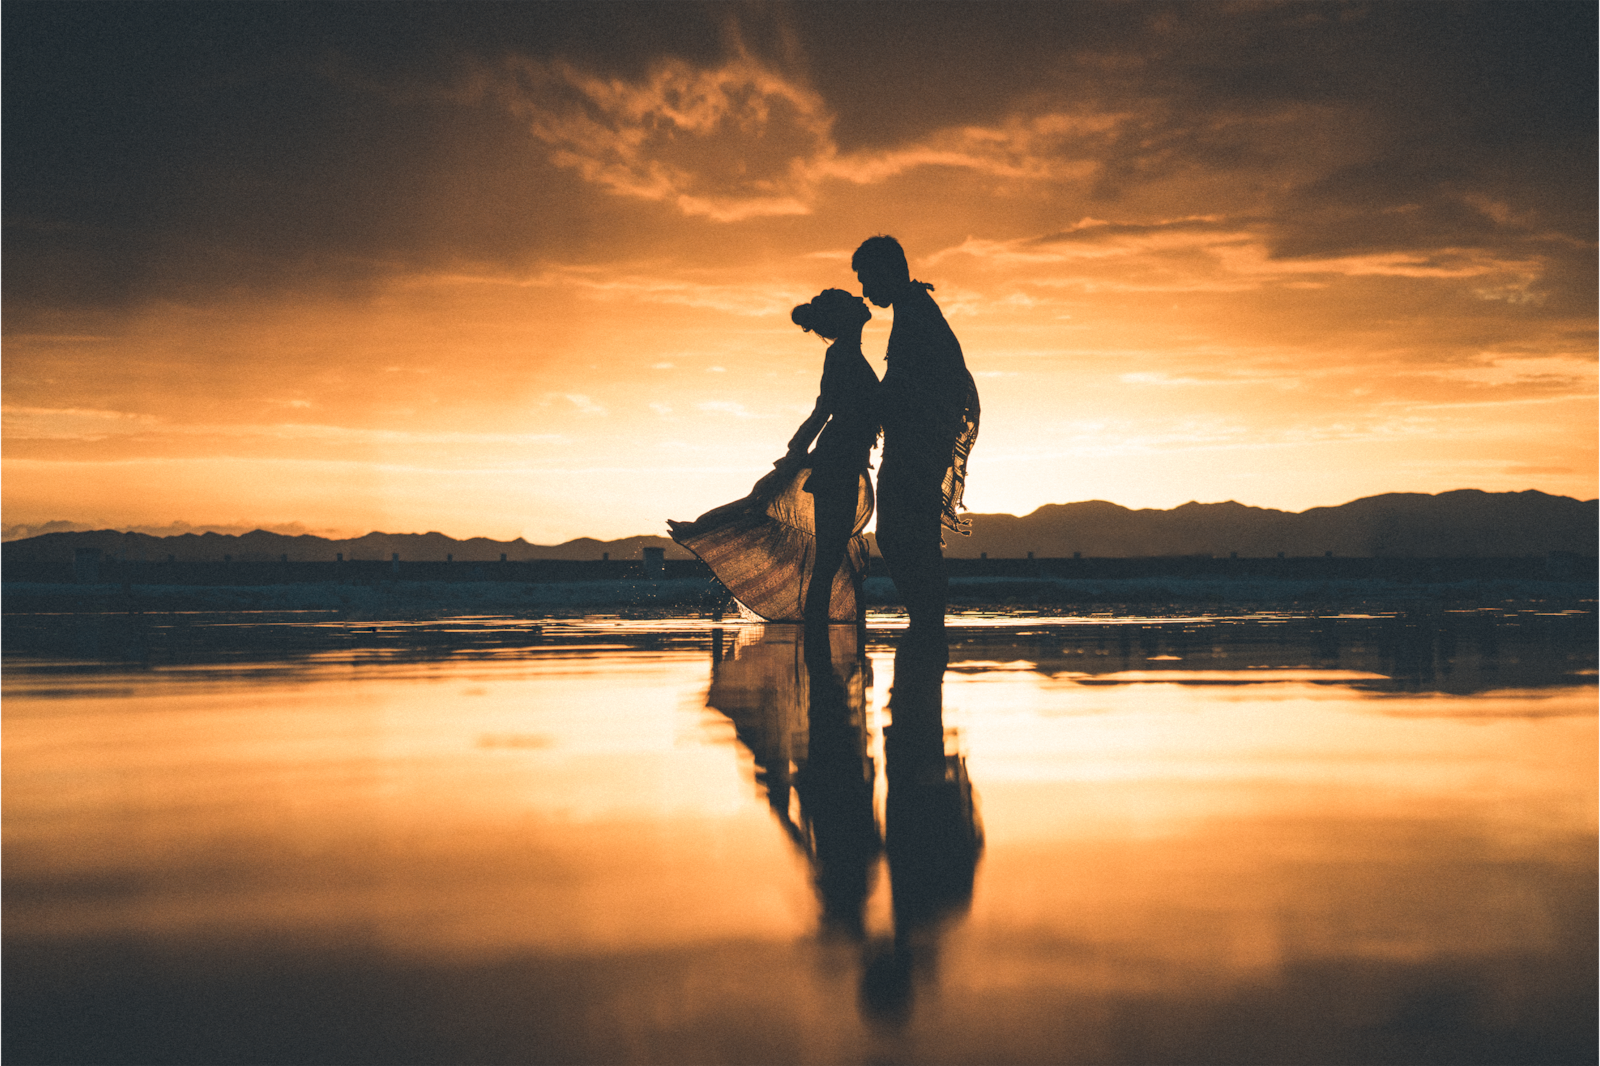 couple standing together at sunset alpha 7RIII